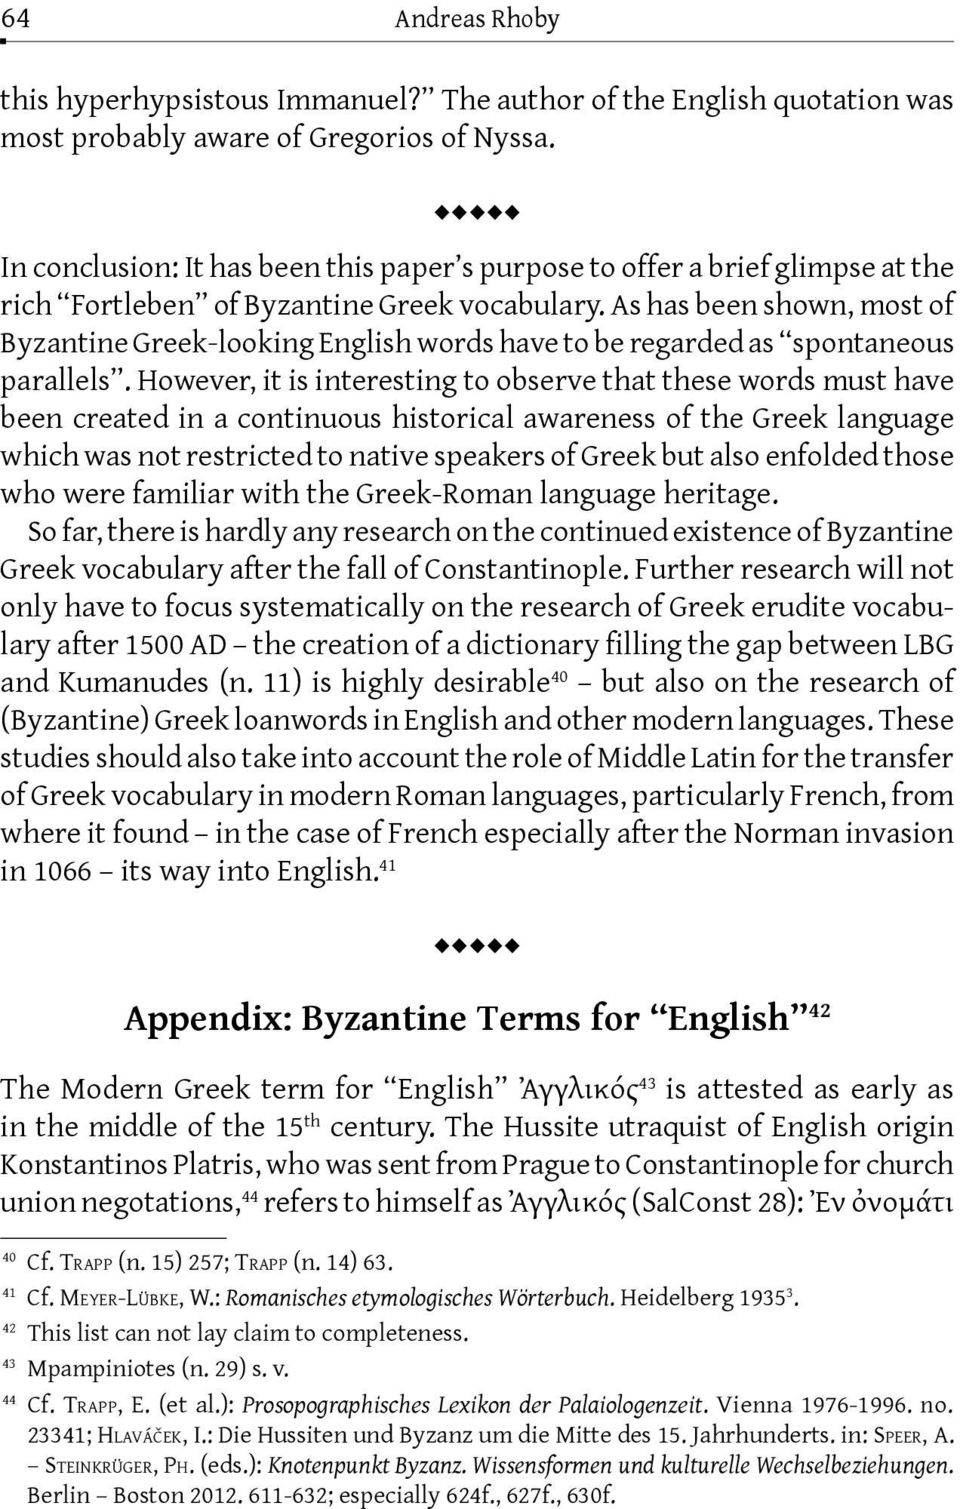 As has been shown, most of Byzantine Greek-looking English words have to be regarded as spontaneous parallels.